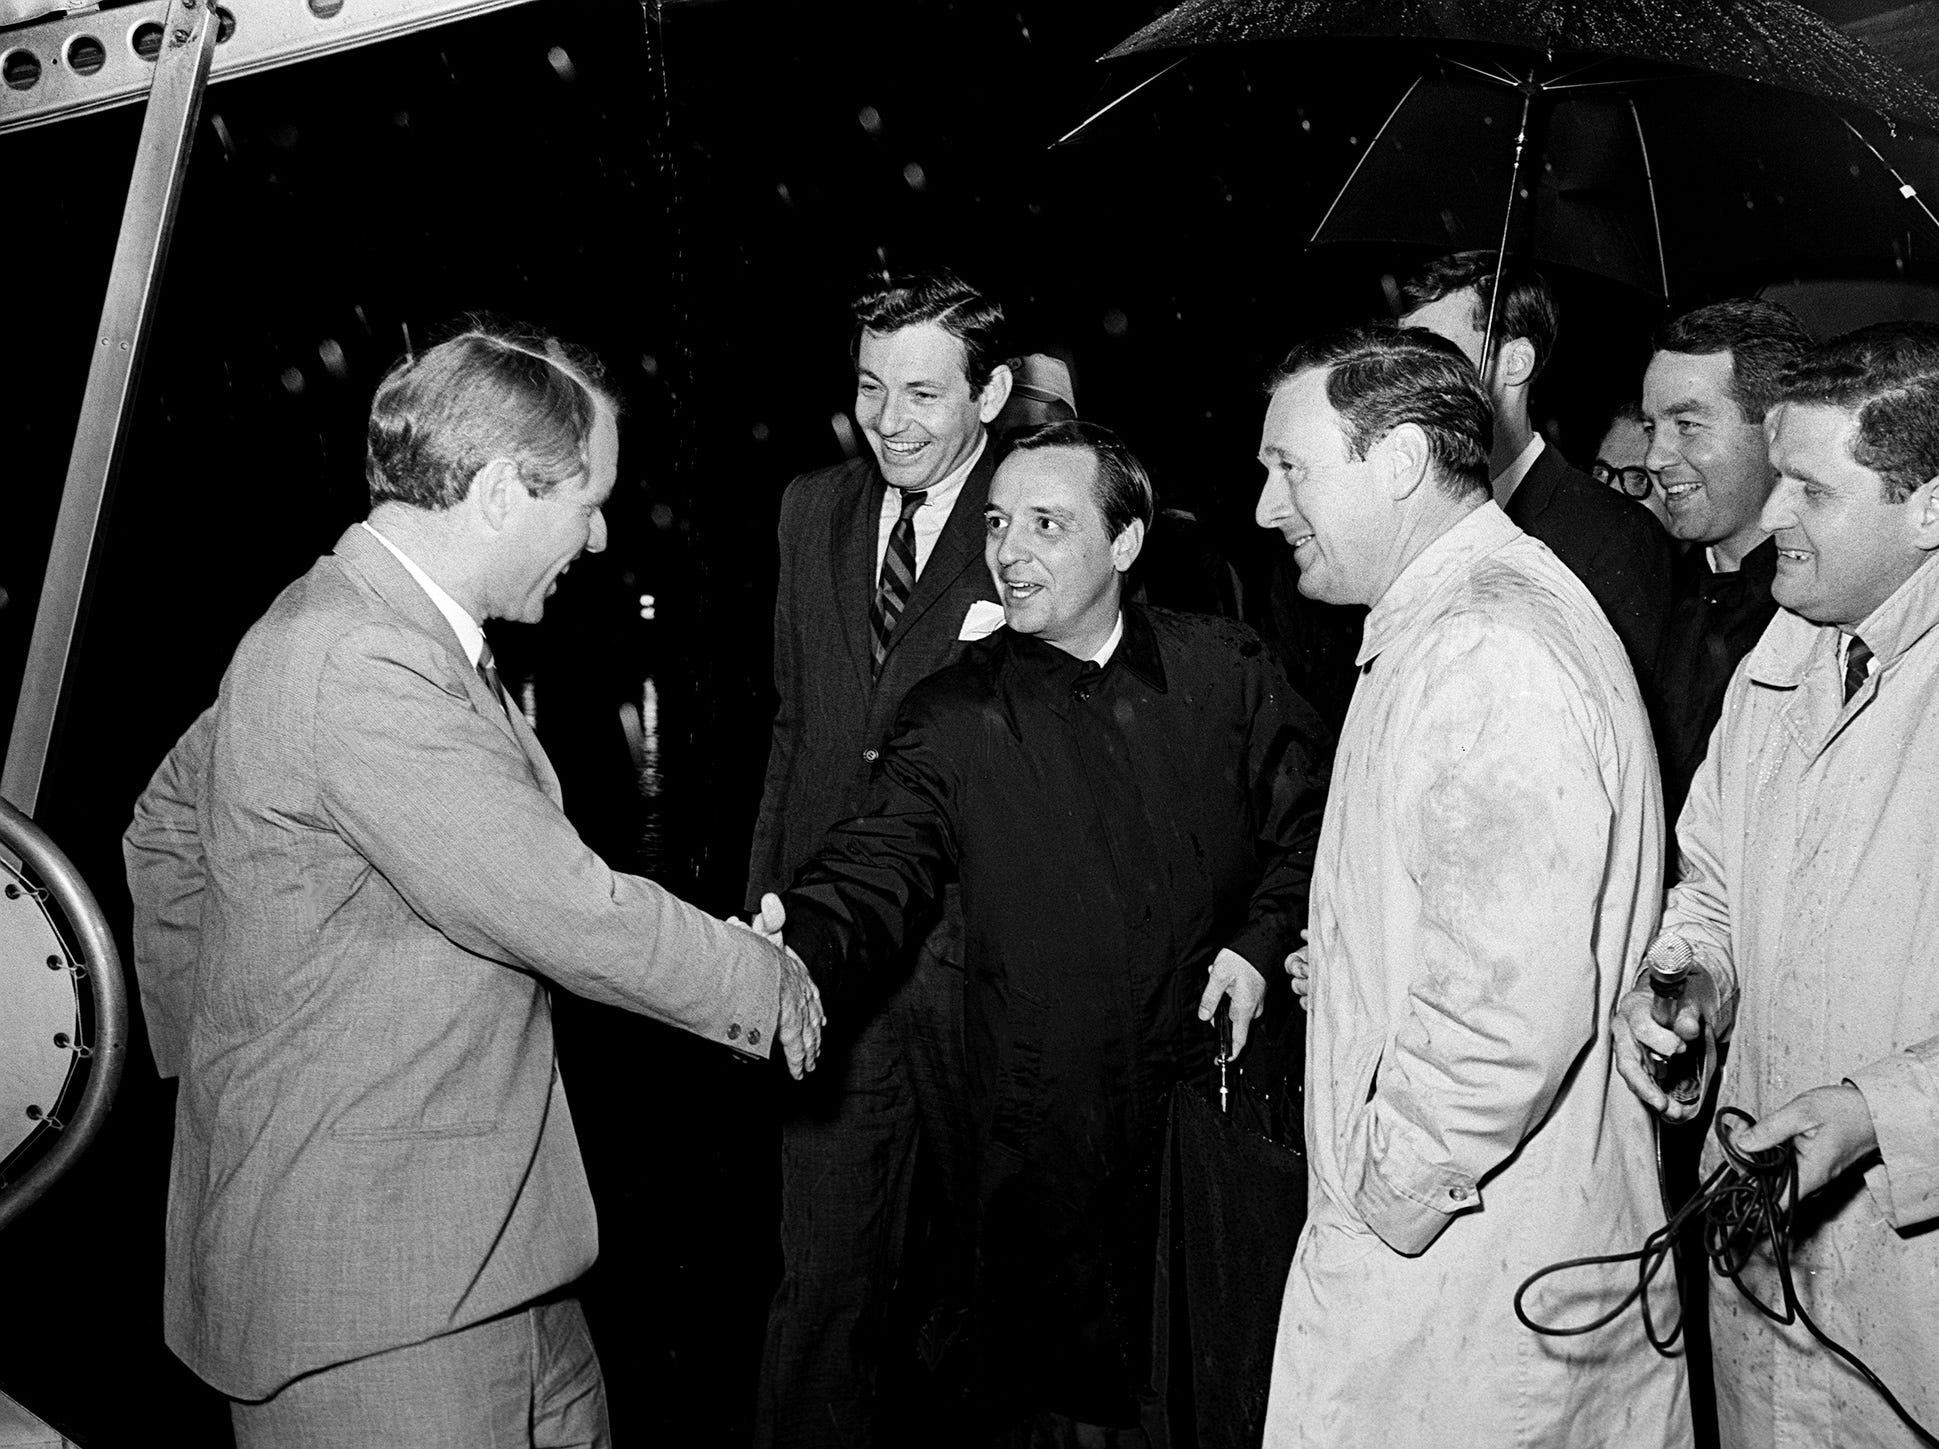 Presidential aspirant Sen. Robert Kennedy, left, is greeted at the Metro Airport by attorney John Jay Hooker Jr., Nashville Tennessean Publisher Amon Carter Evans and Editor John Seigenthaler on March 21, 1968. Kennedy was in town for the Impact Symposium at Vanderbilt University.